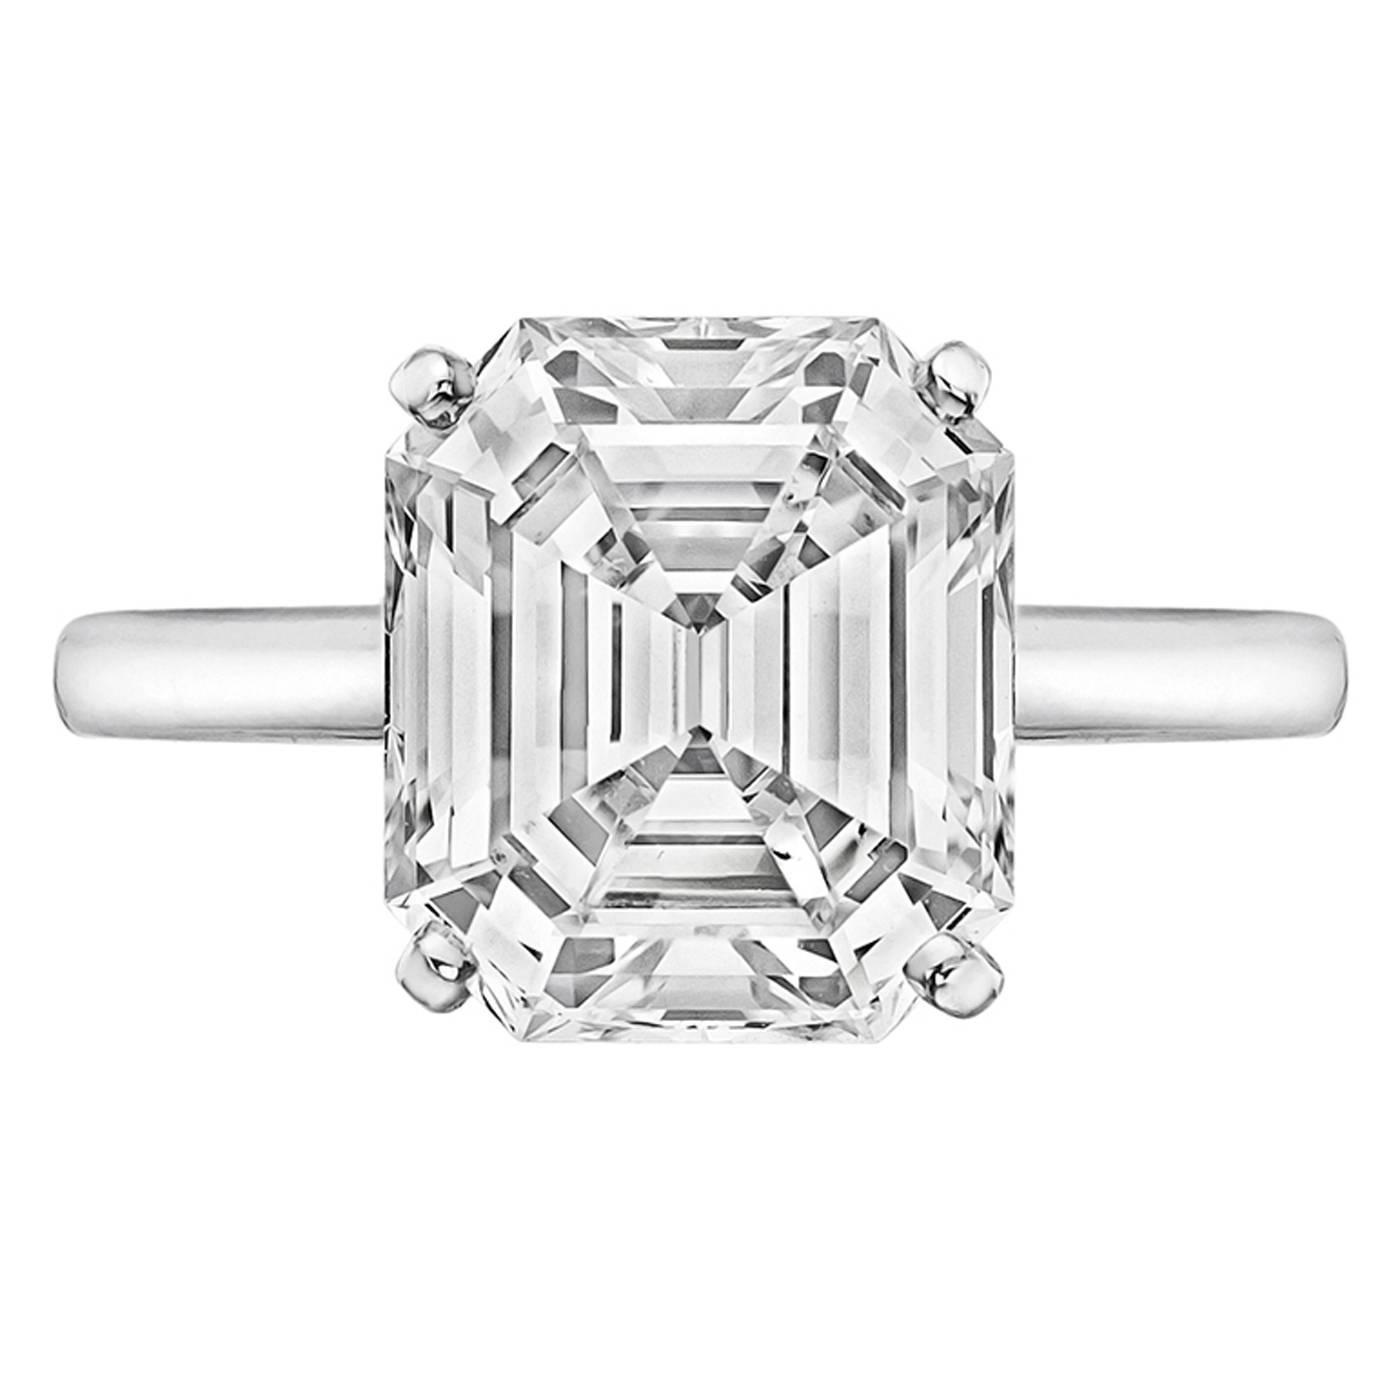 graff 4 34 carat emerald cut diamond solitaire engagement ring at